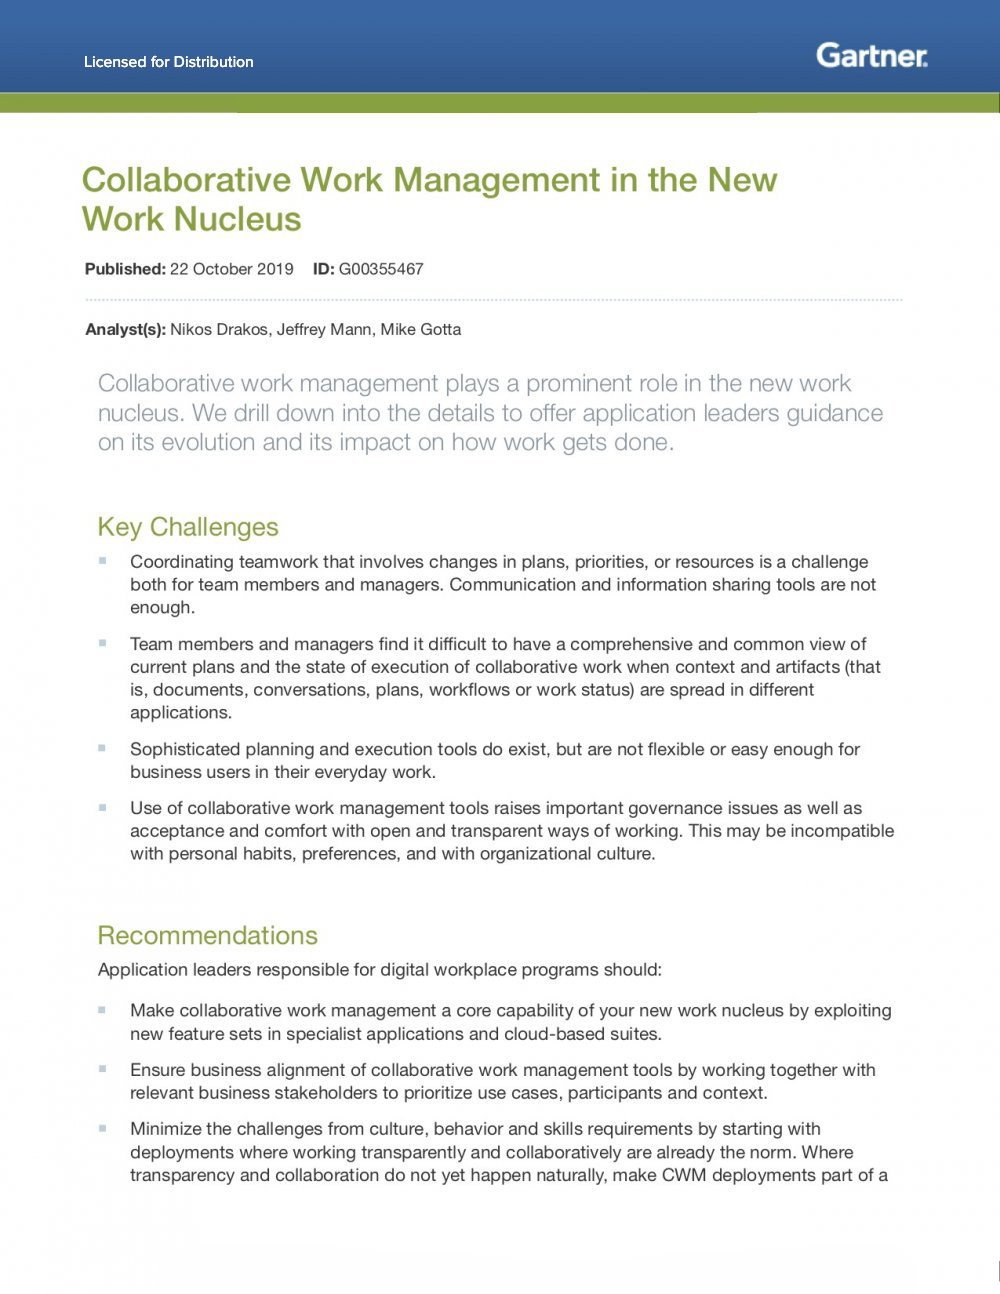 Collaborative work management report